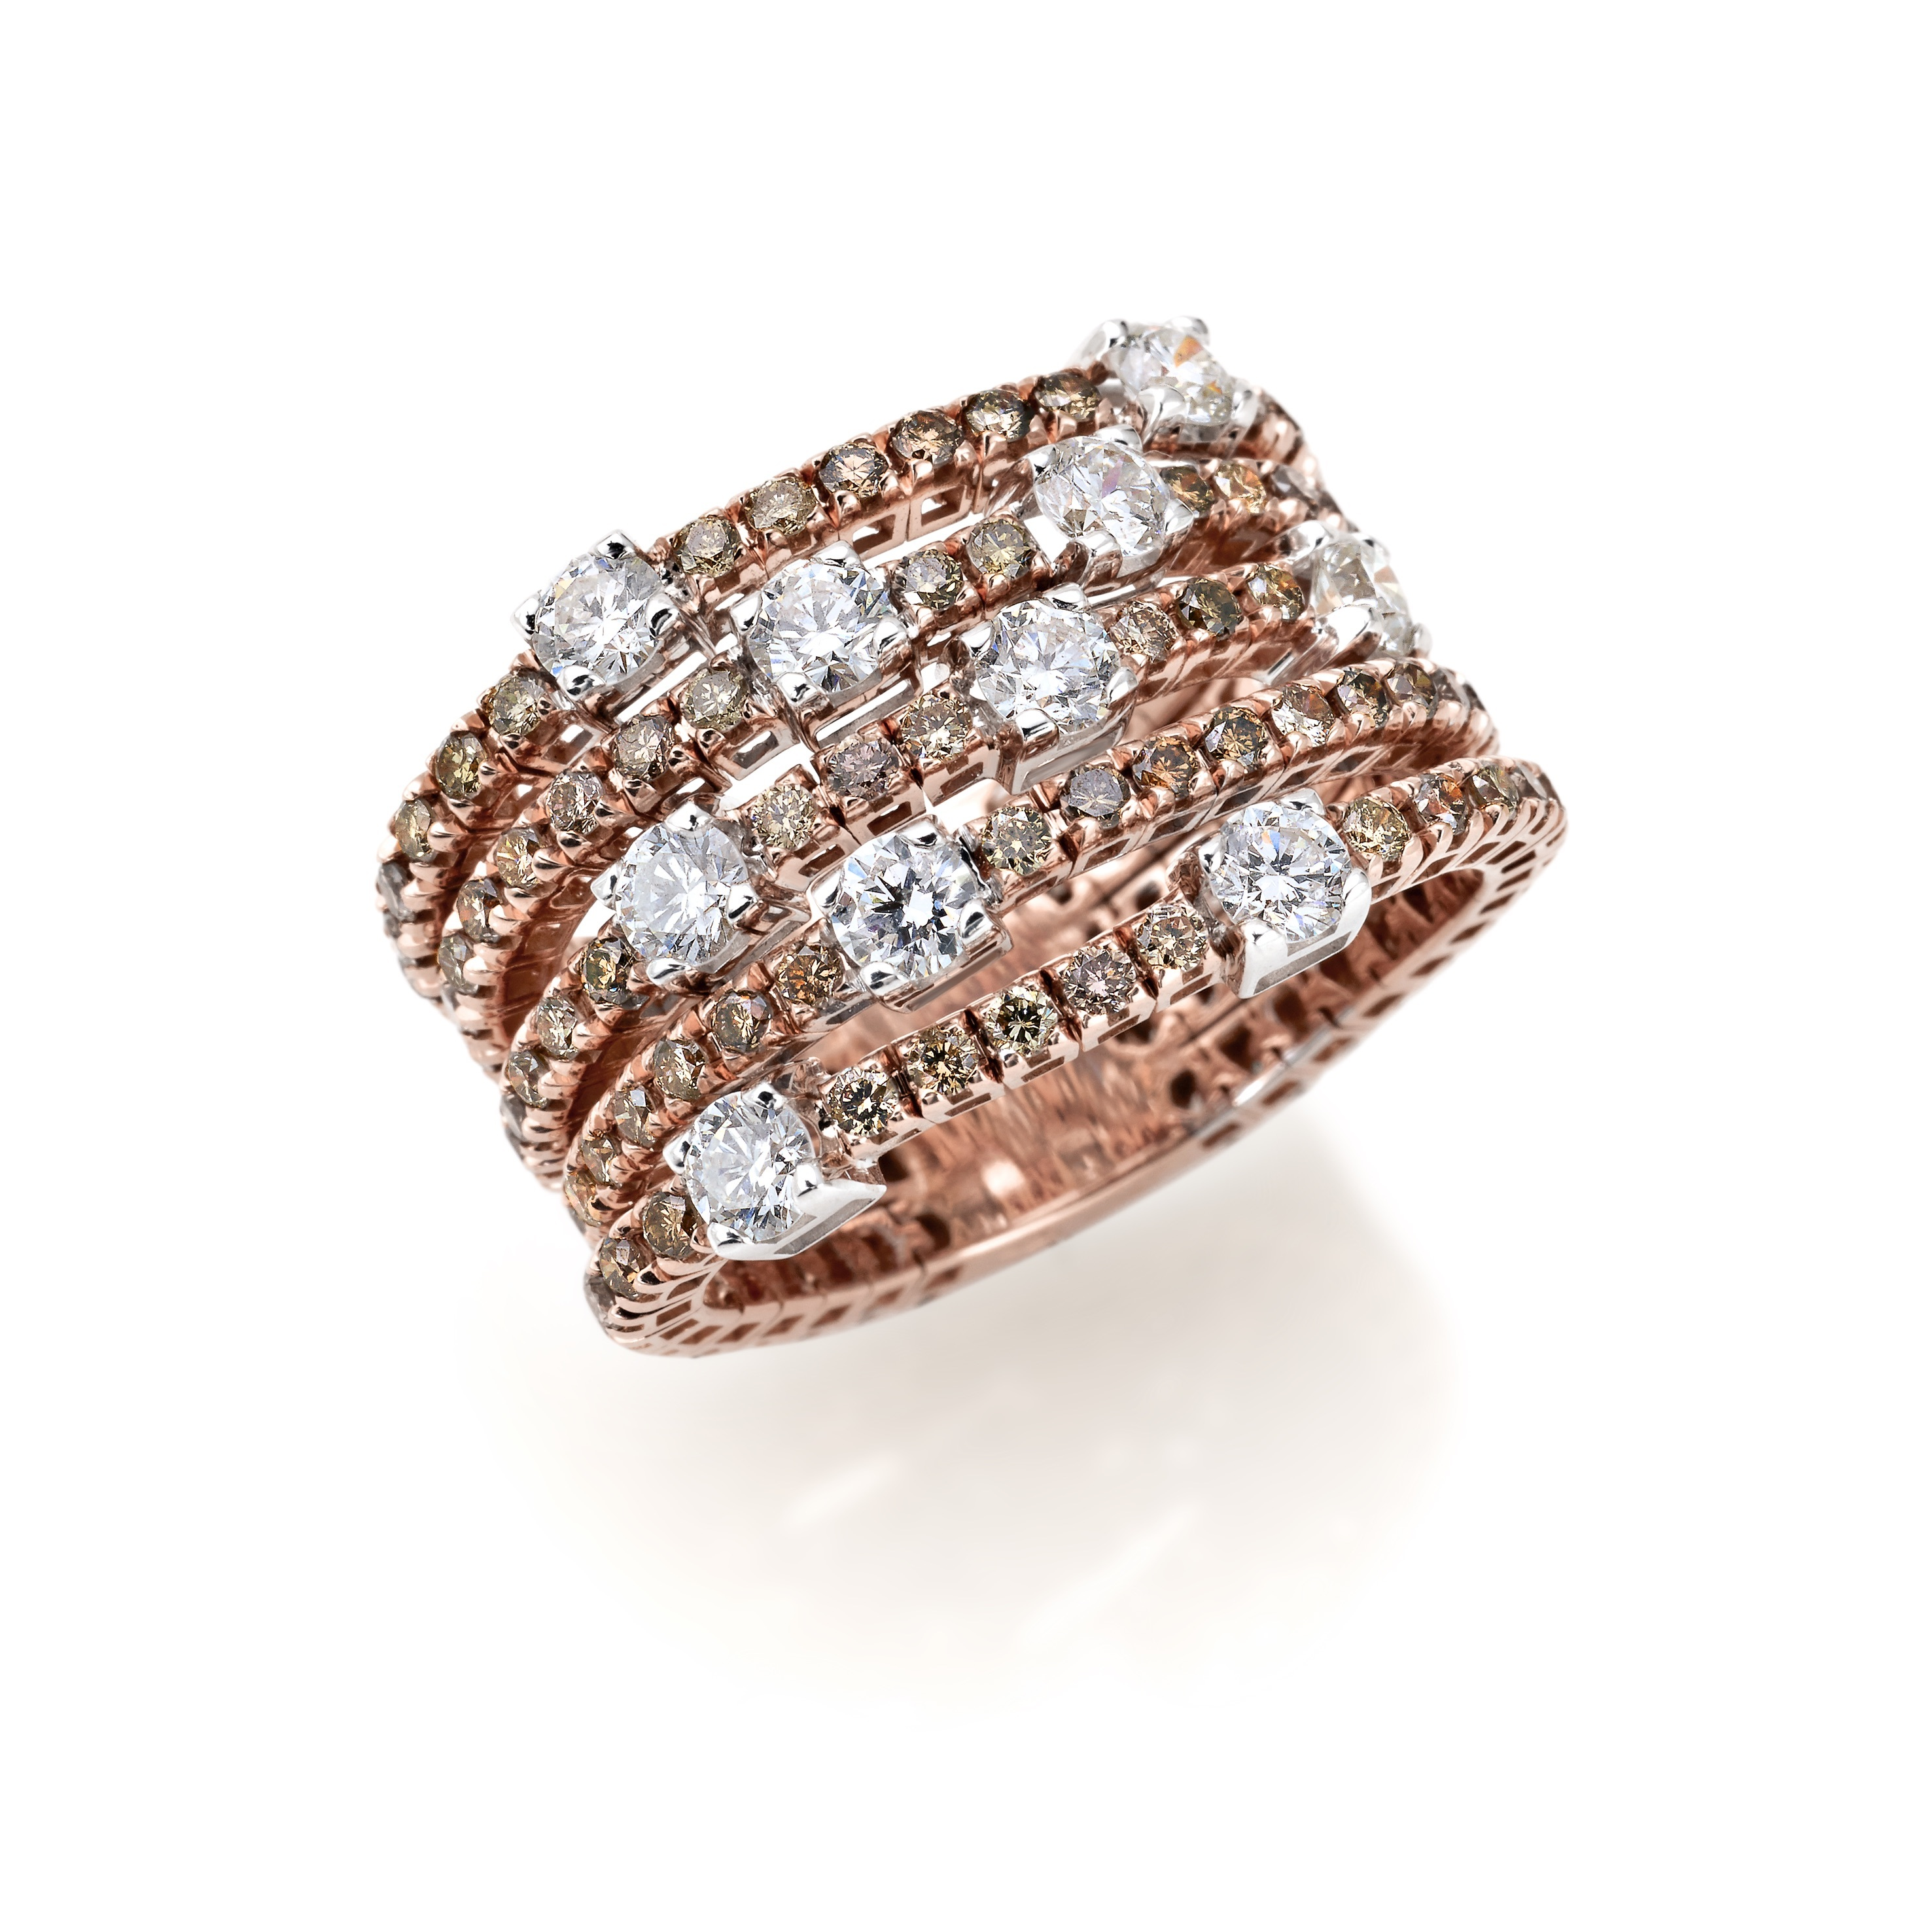 Mozafarians current featured designers, Crieri 18ct Rose Gold Ring with 3.2ct White Diamonds: G Colour, VS-S1 Clarity